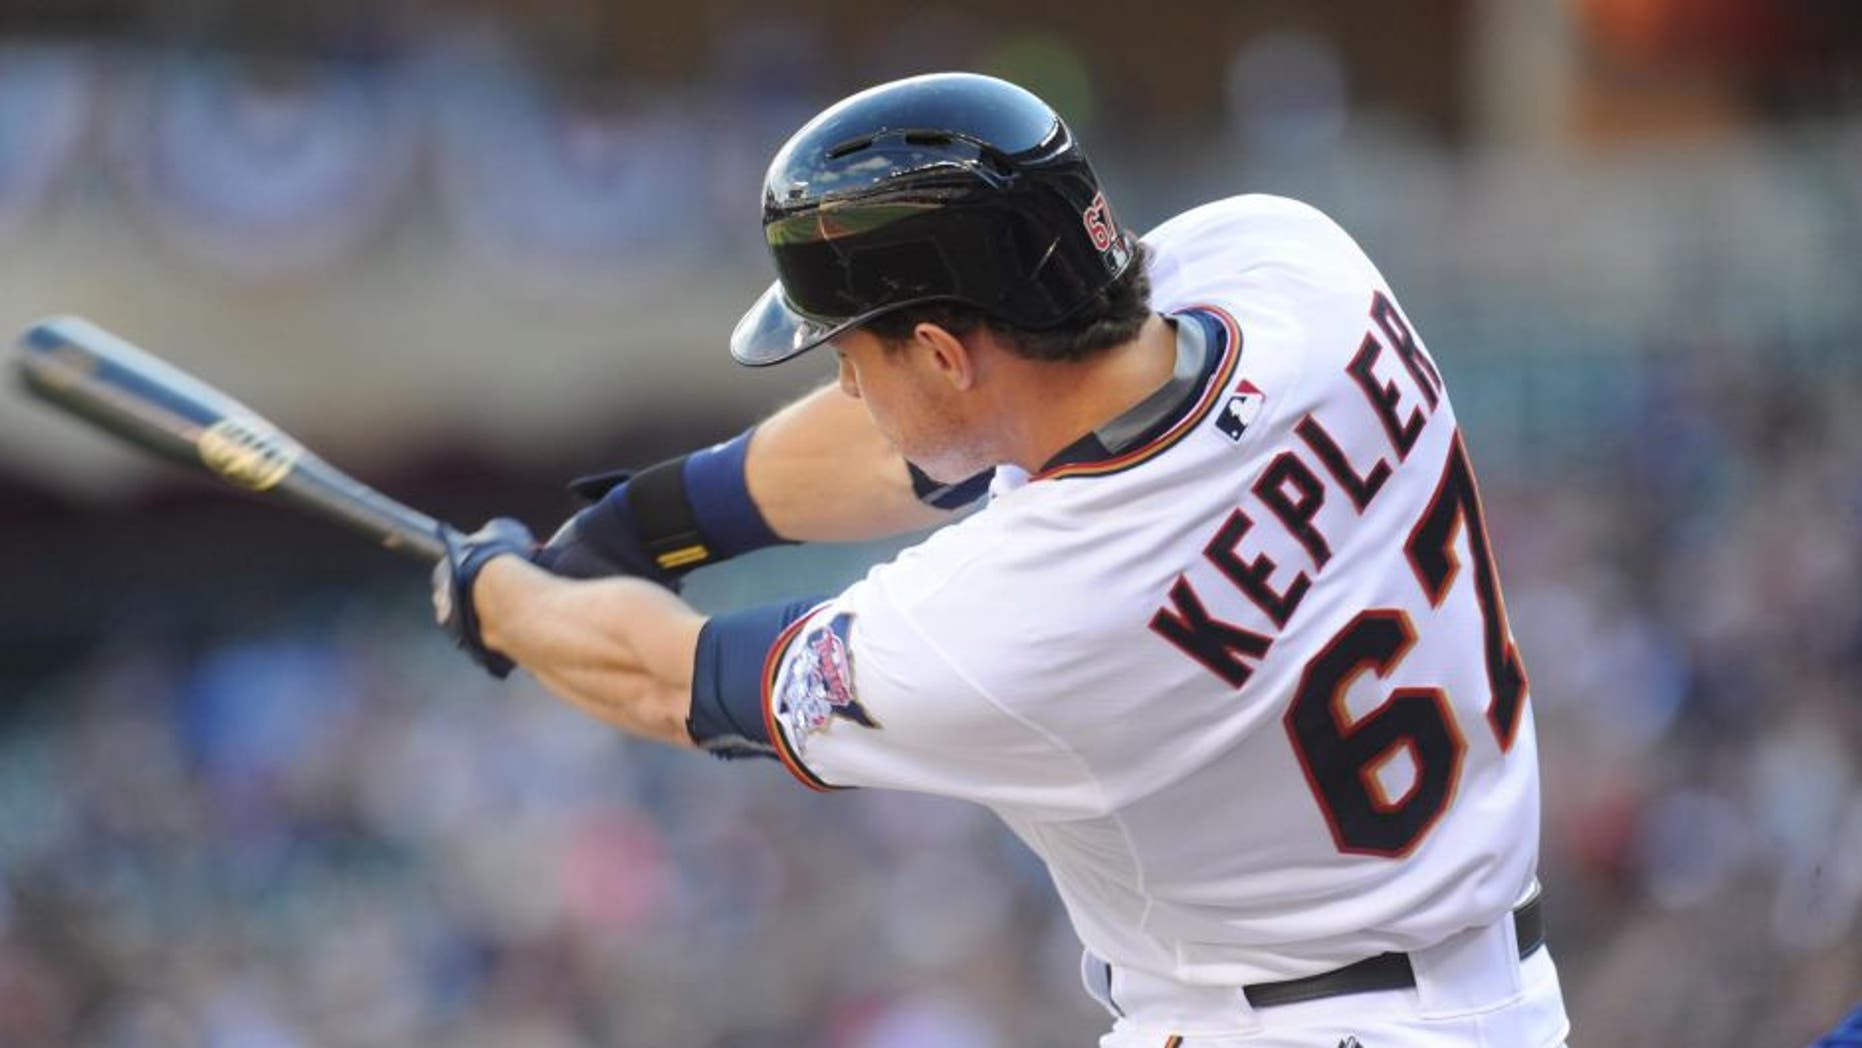 Oct 4, 2015; Minneapolis, MN, USA; Minnesota Twins right fielder Max Kepler (67) gets a base hit during the first inning against the Kansas City Royals at Target Field.